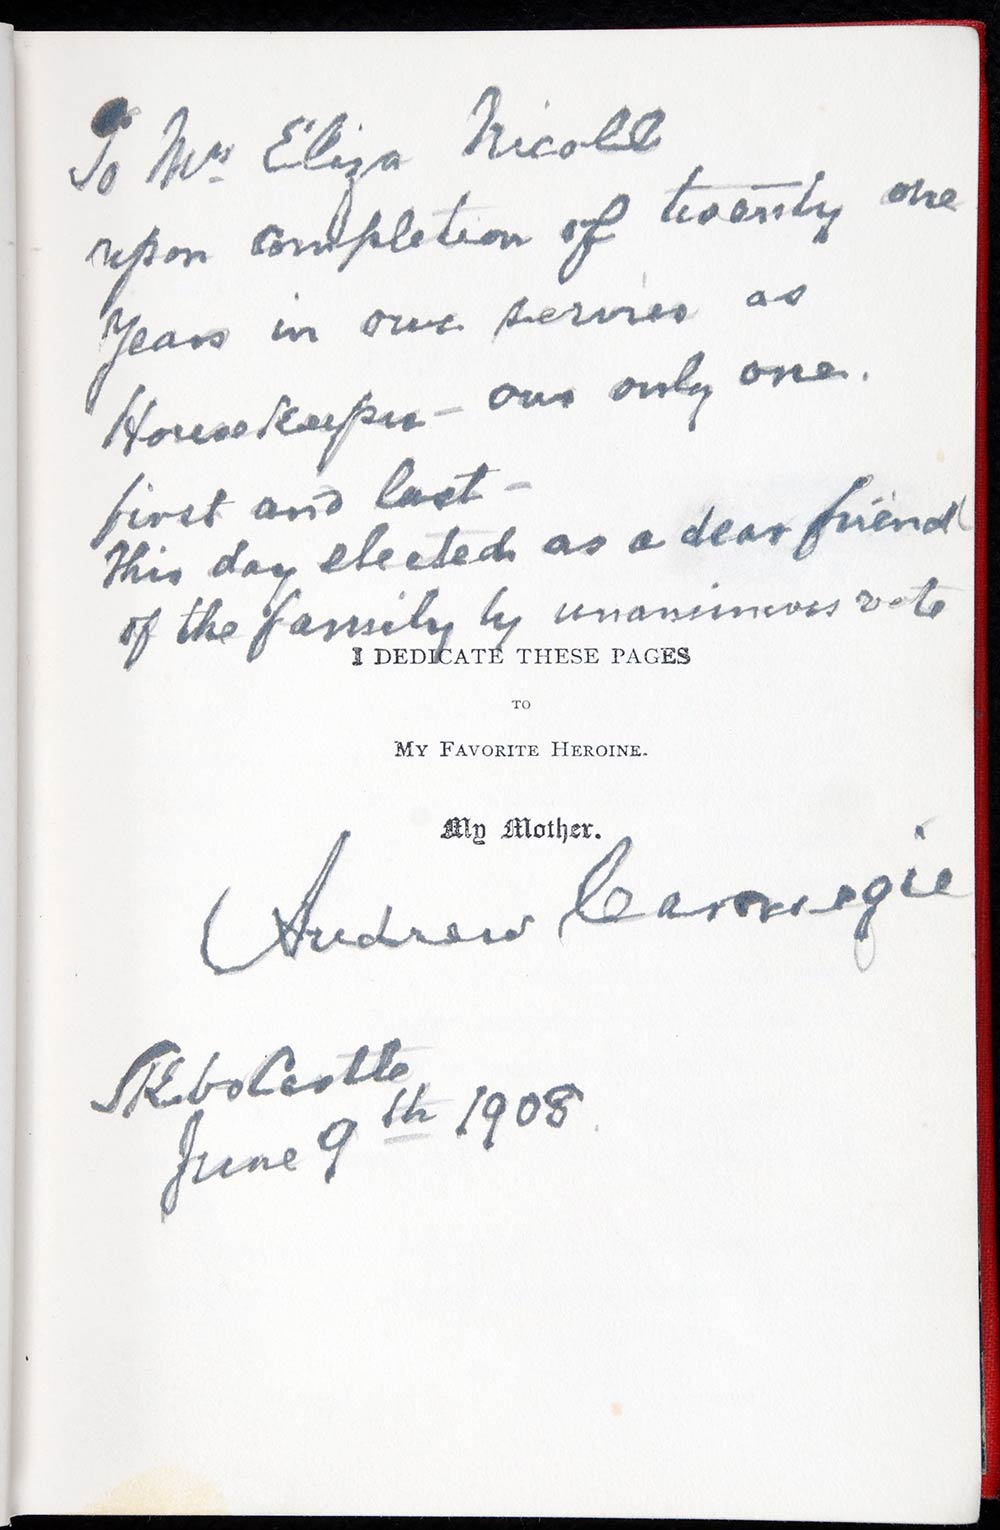 Andrew Carnegie. <em>An American four-in-hand in Britain</em>. New York: Charles Scribner's Sons, 1903.